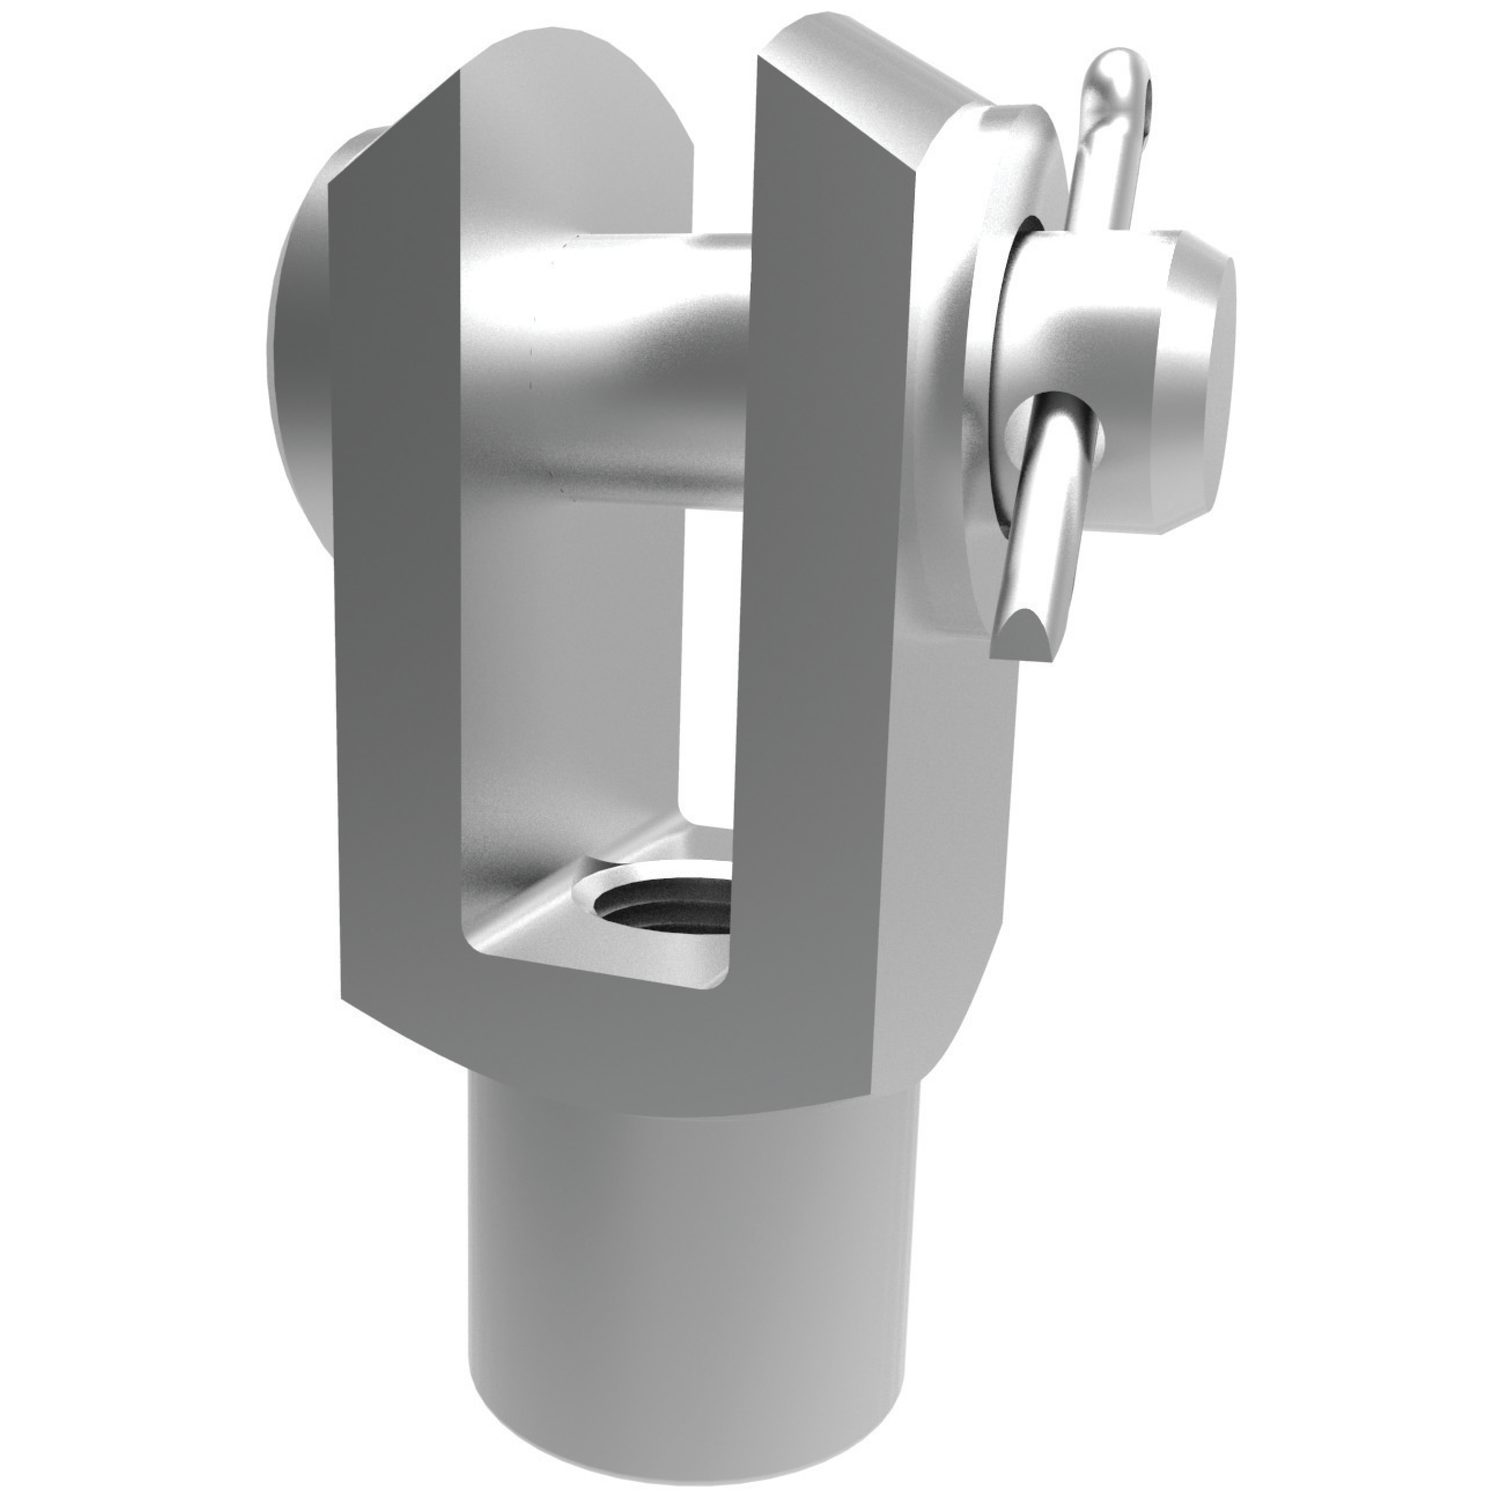 R3390 - Steel Clevis Joints with Pin